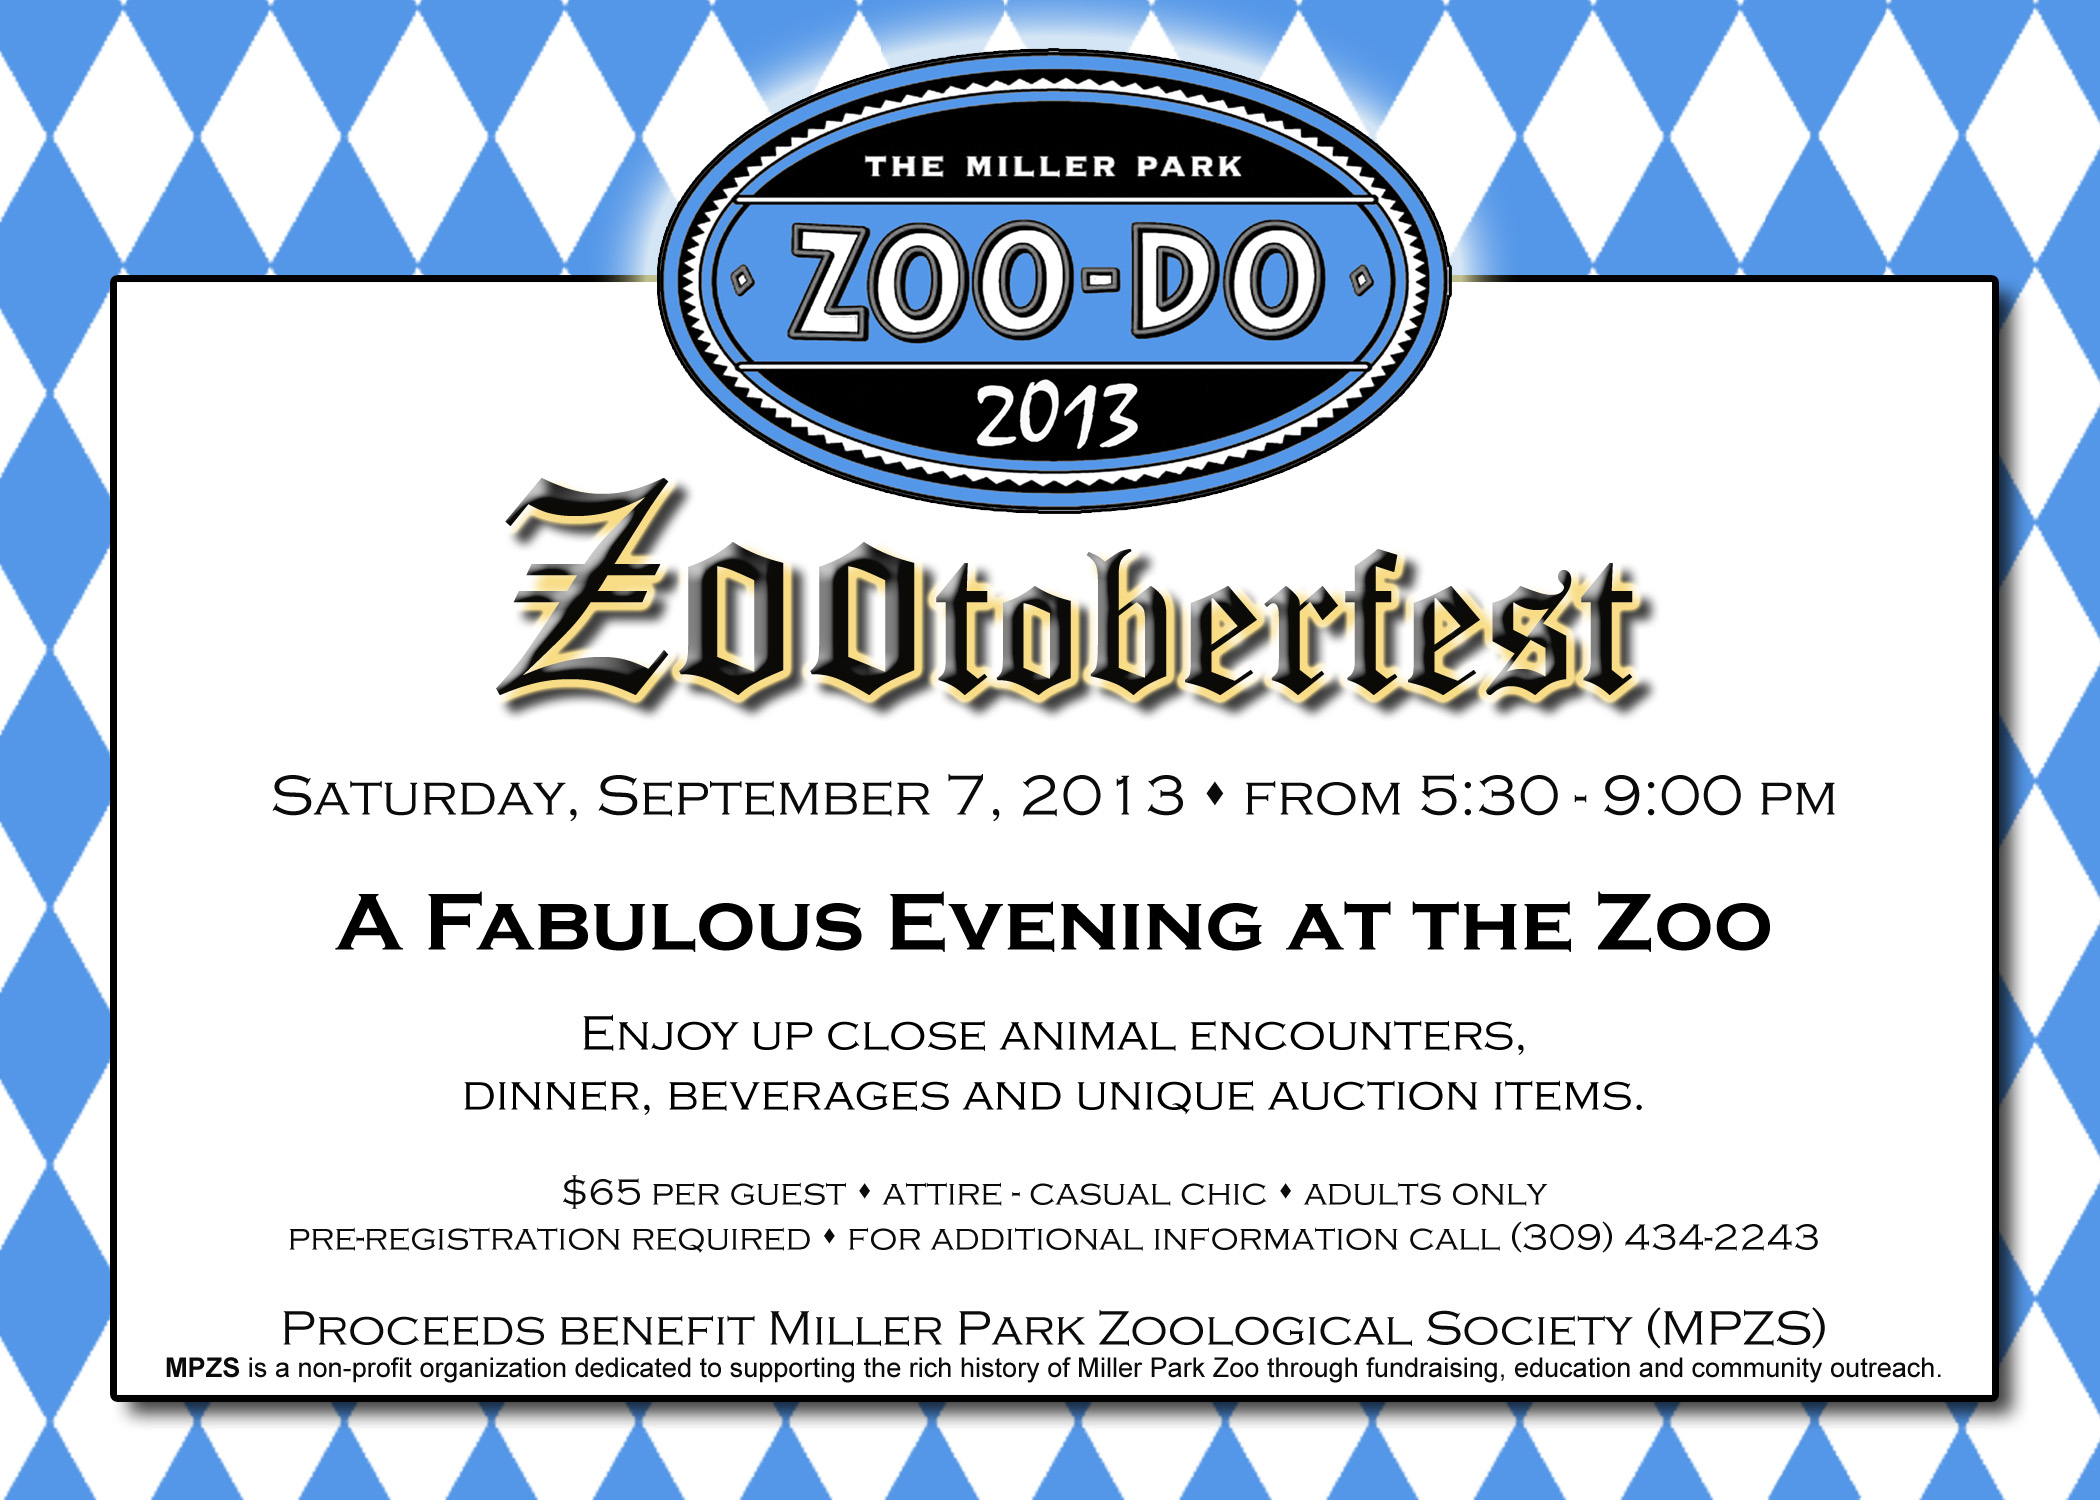 Zoo Do invite